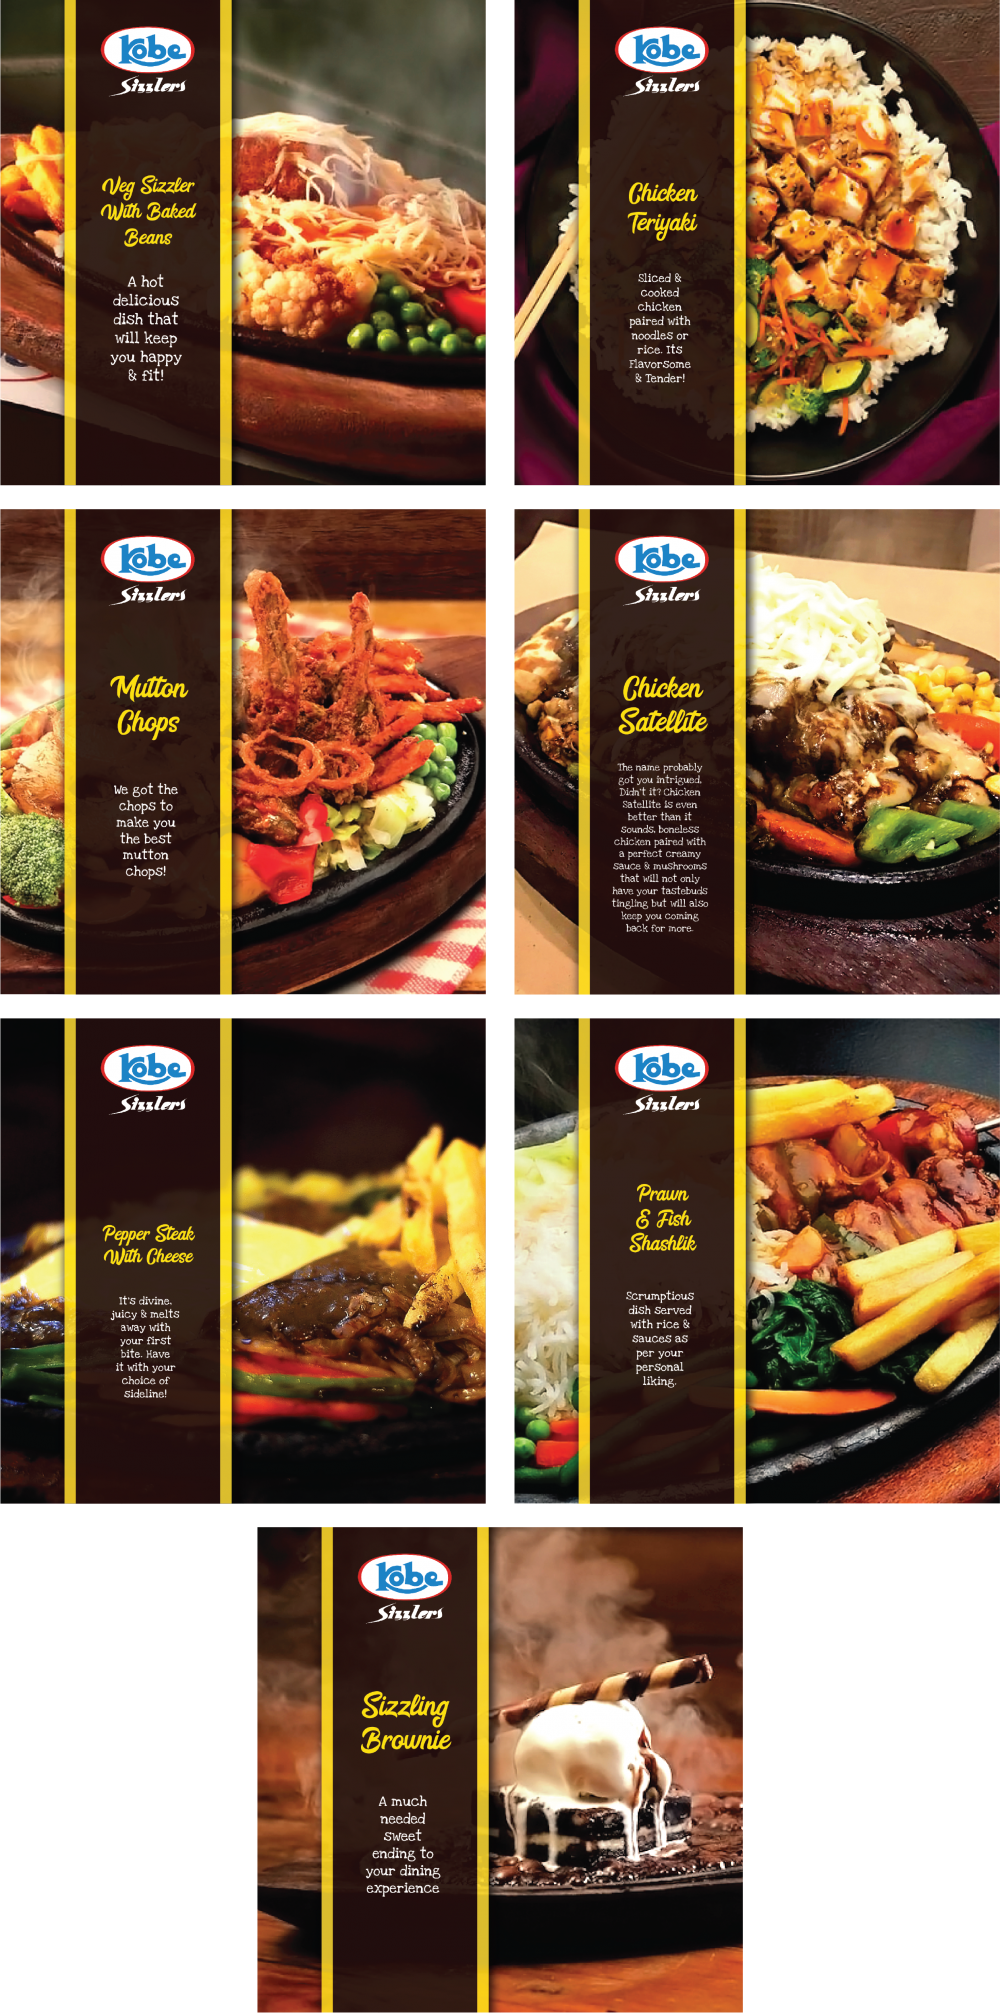 SOCIAL MEDIA DESIGN KOBE SIZZLERS FACEBOOK BY FS THE CREATIVE